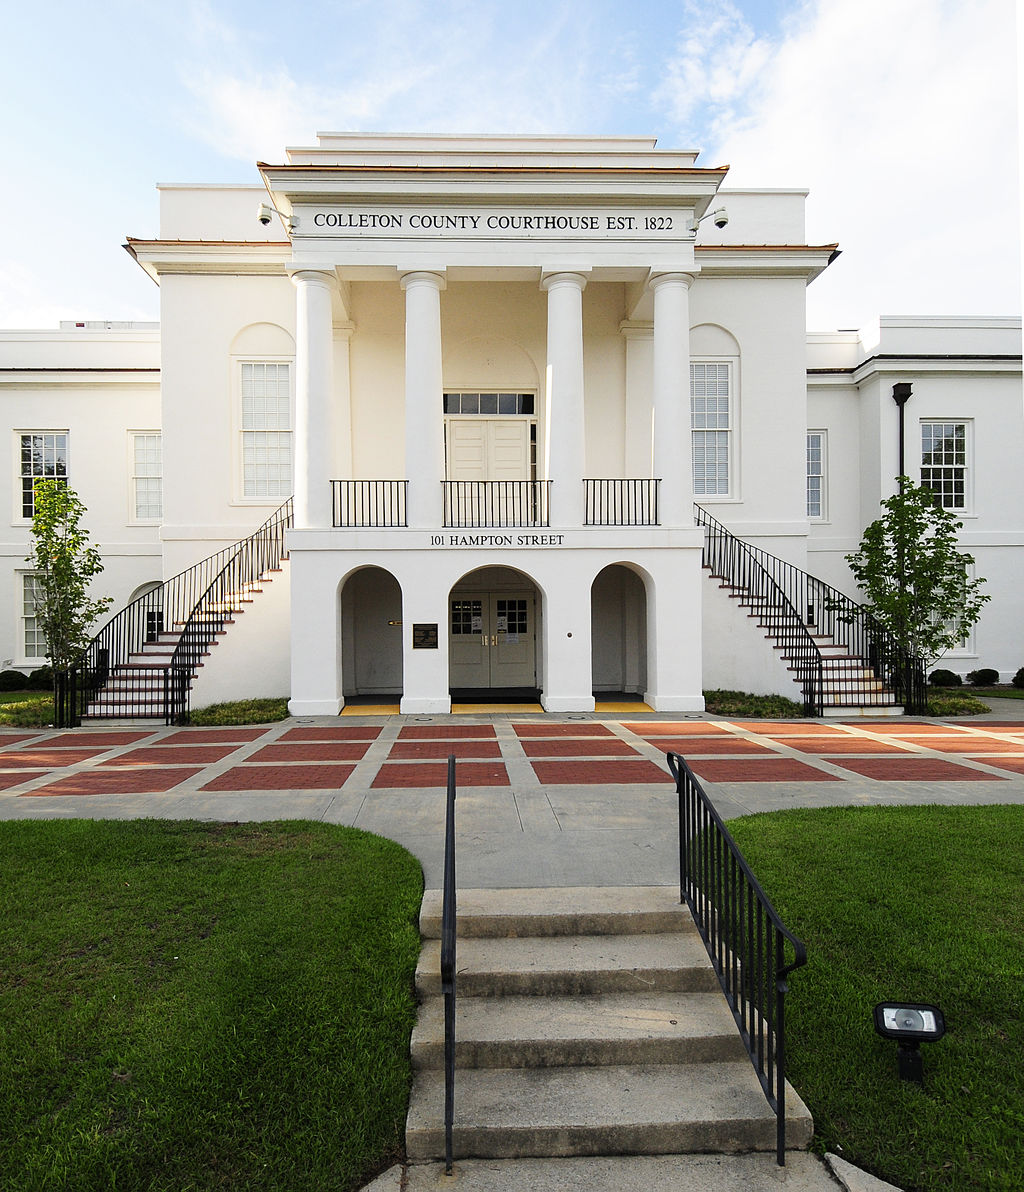 The Colleton County Courthouse